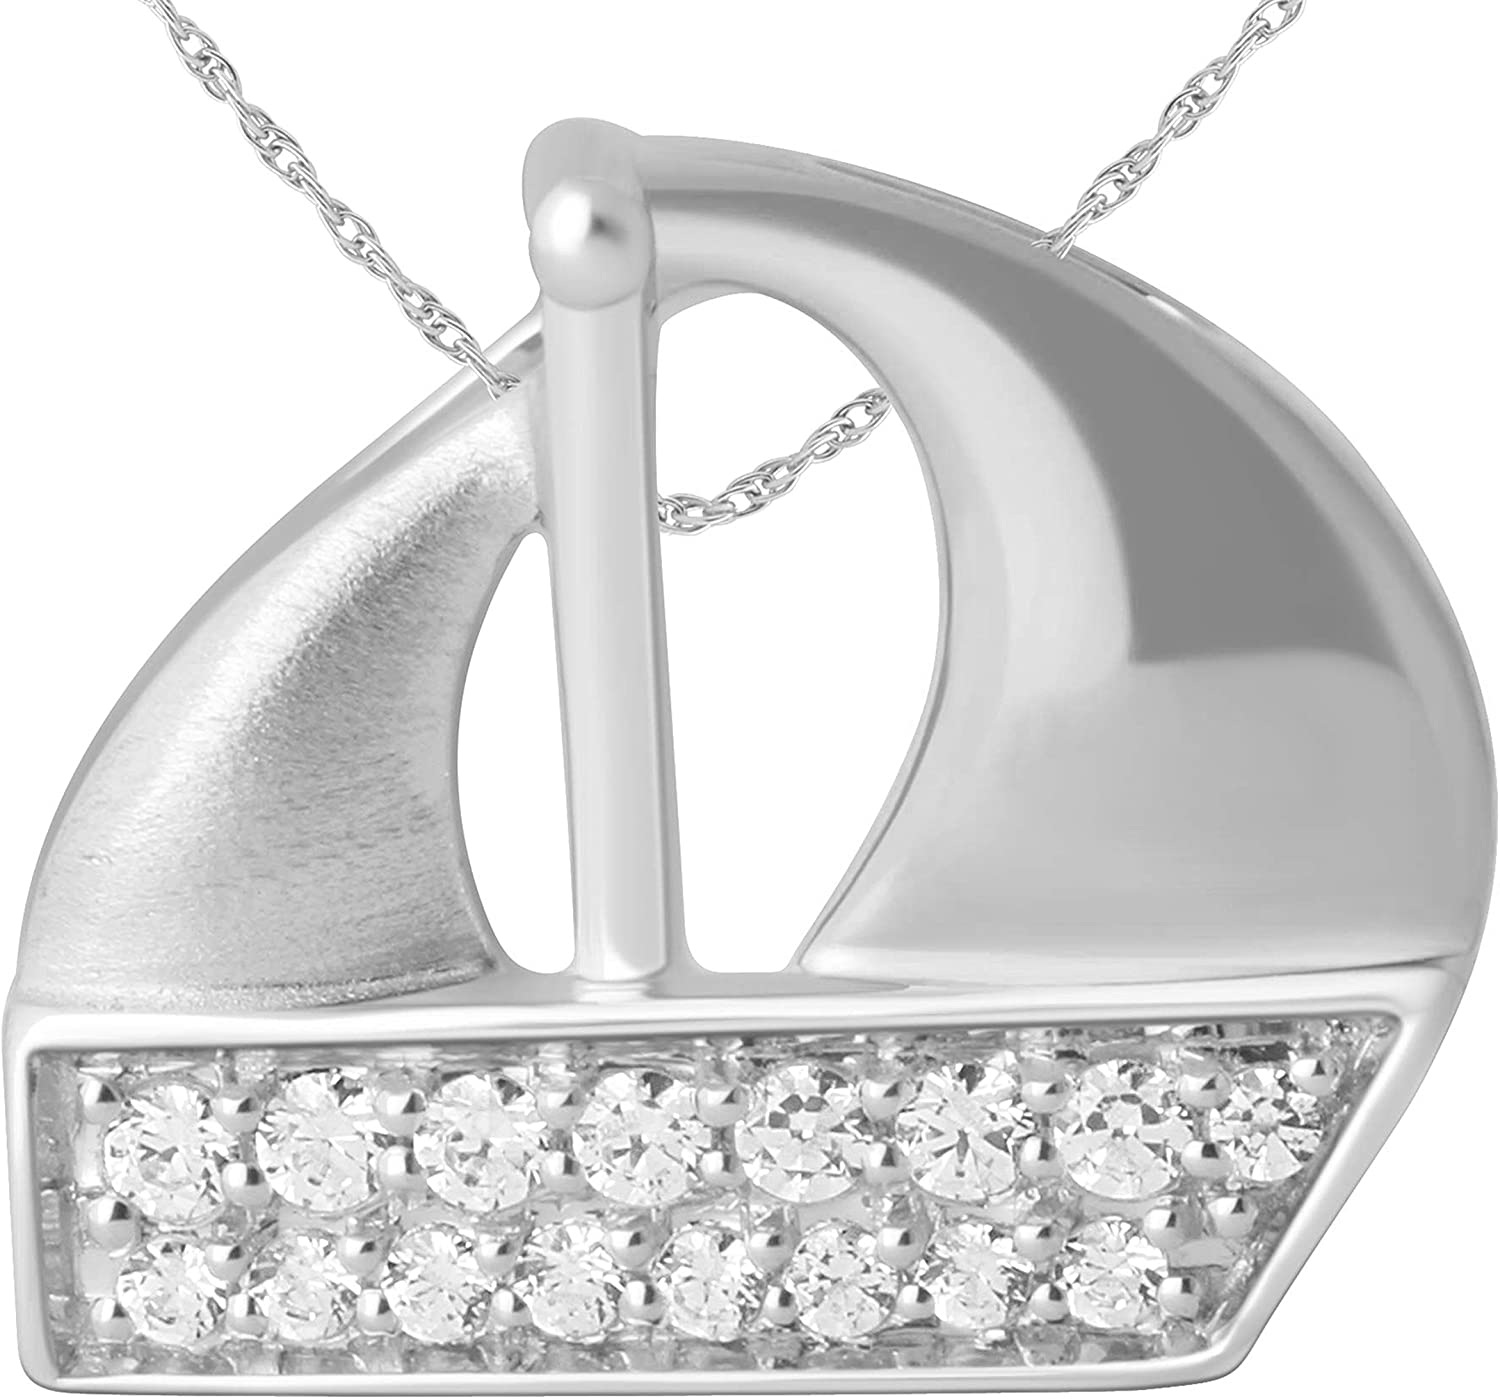 10K White Gold Diamond Accent Boat Pendant